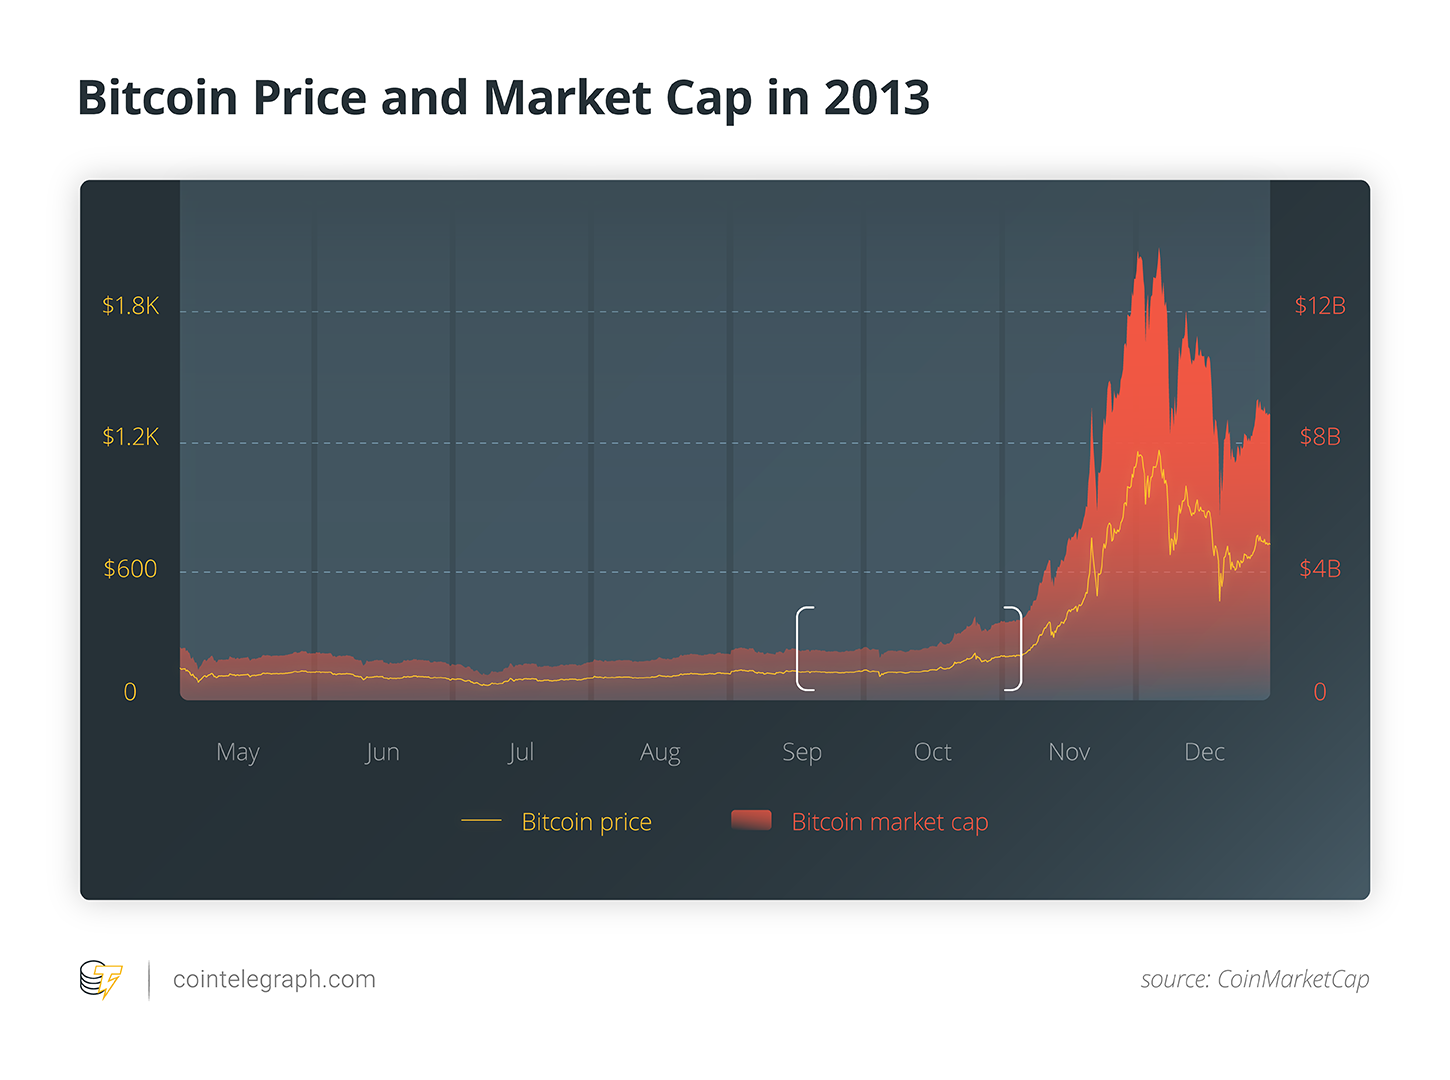 Bitcoin price and MArket Cap in 2013